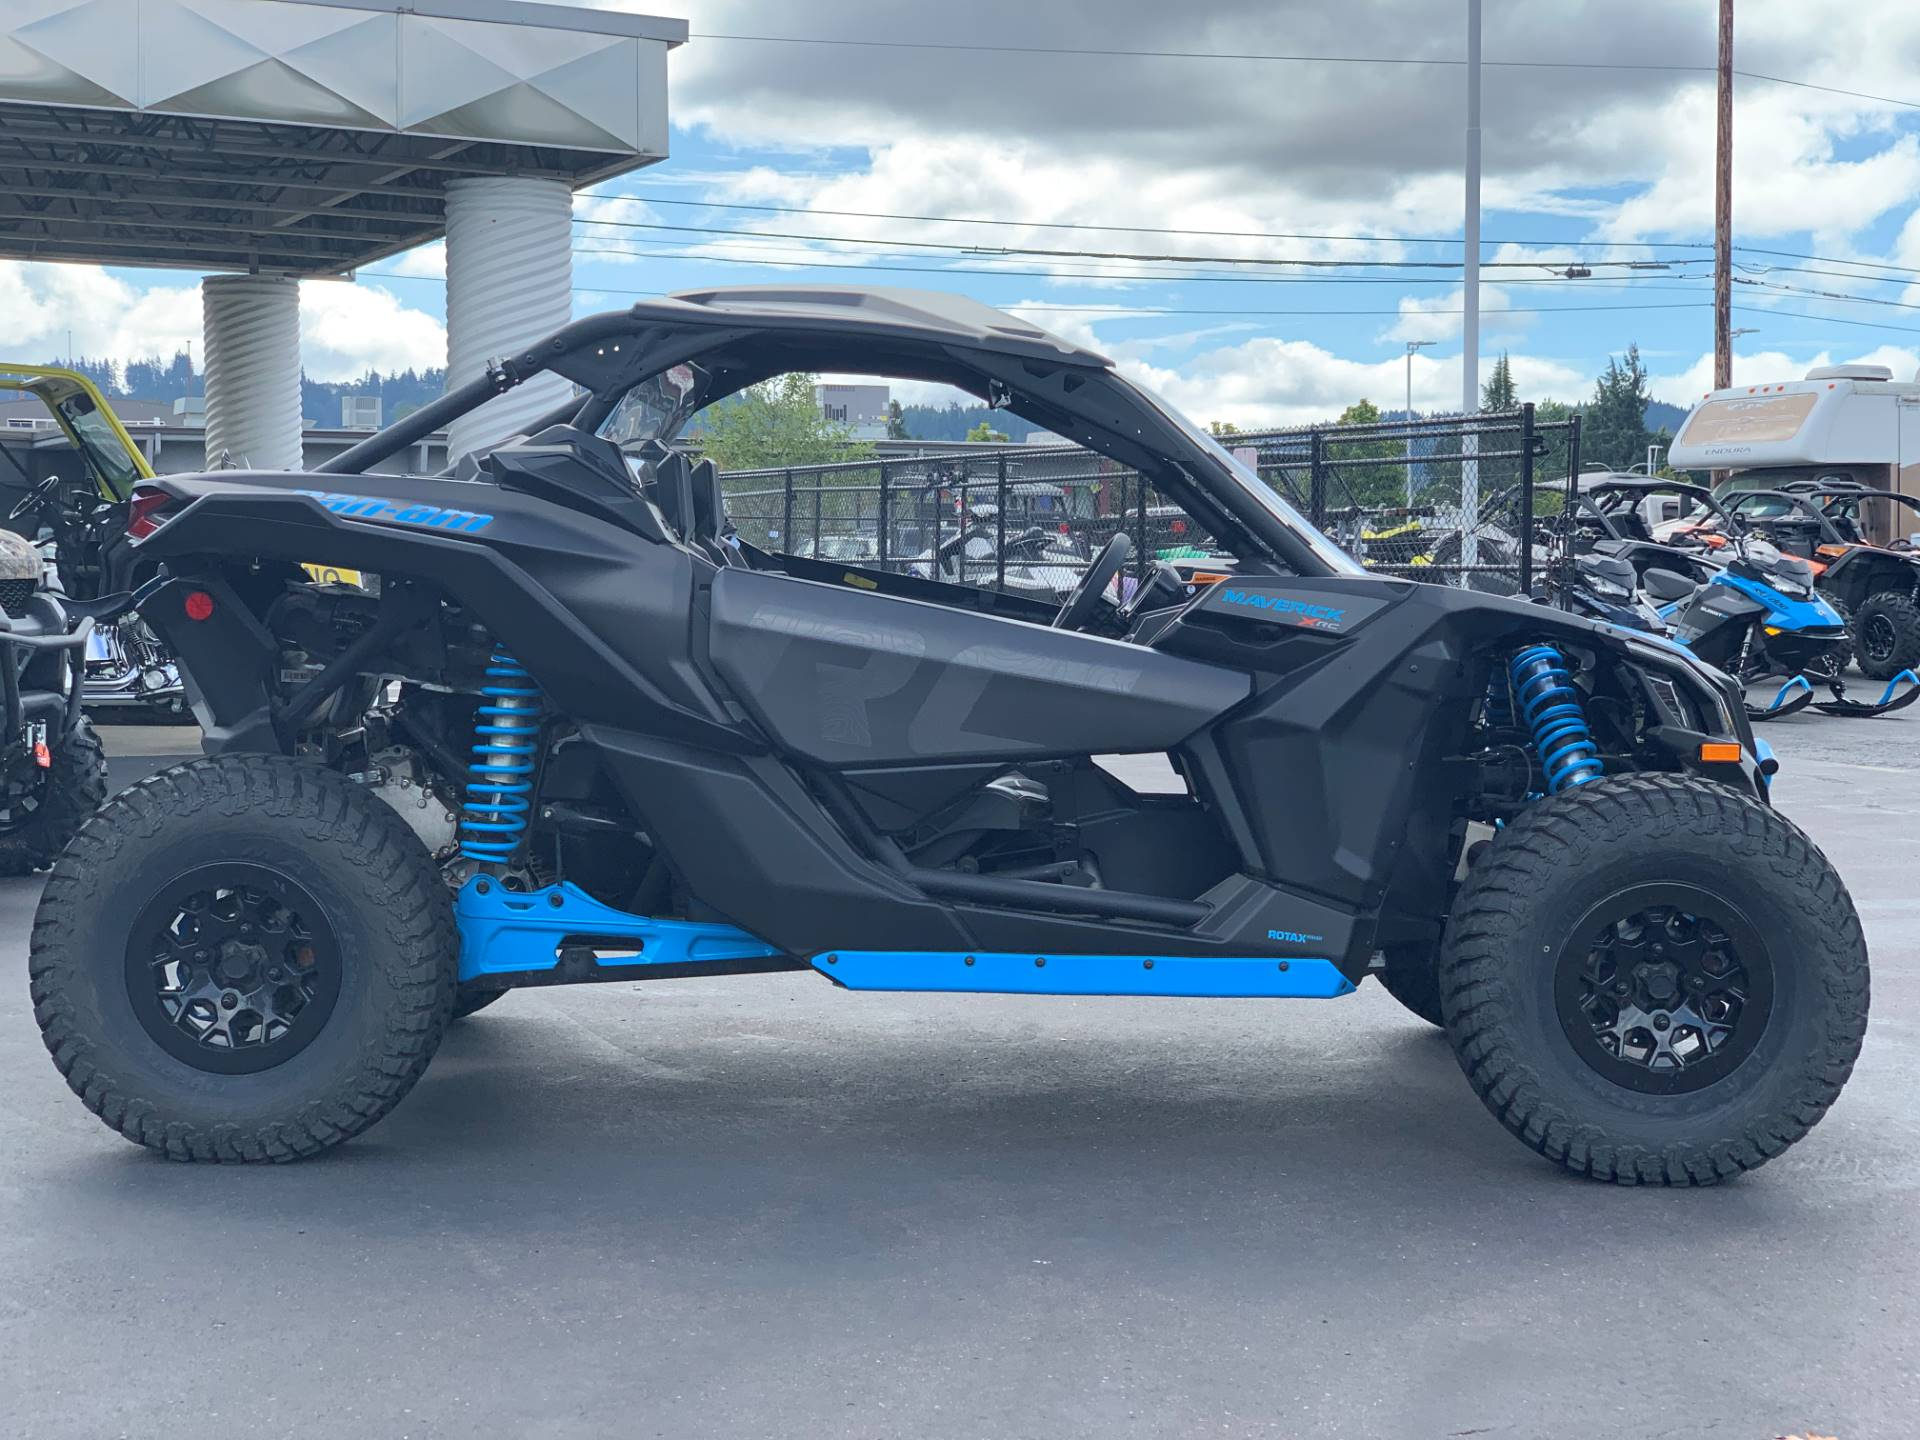 2019 Can-Am Maverick X3 X rc Turbo in Eugene, Oregon - Photo 8